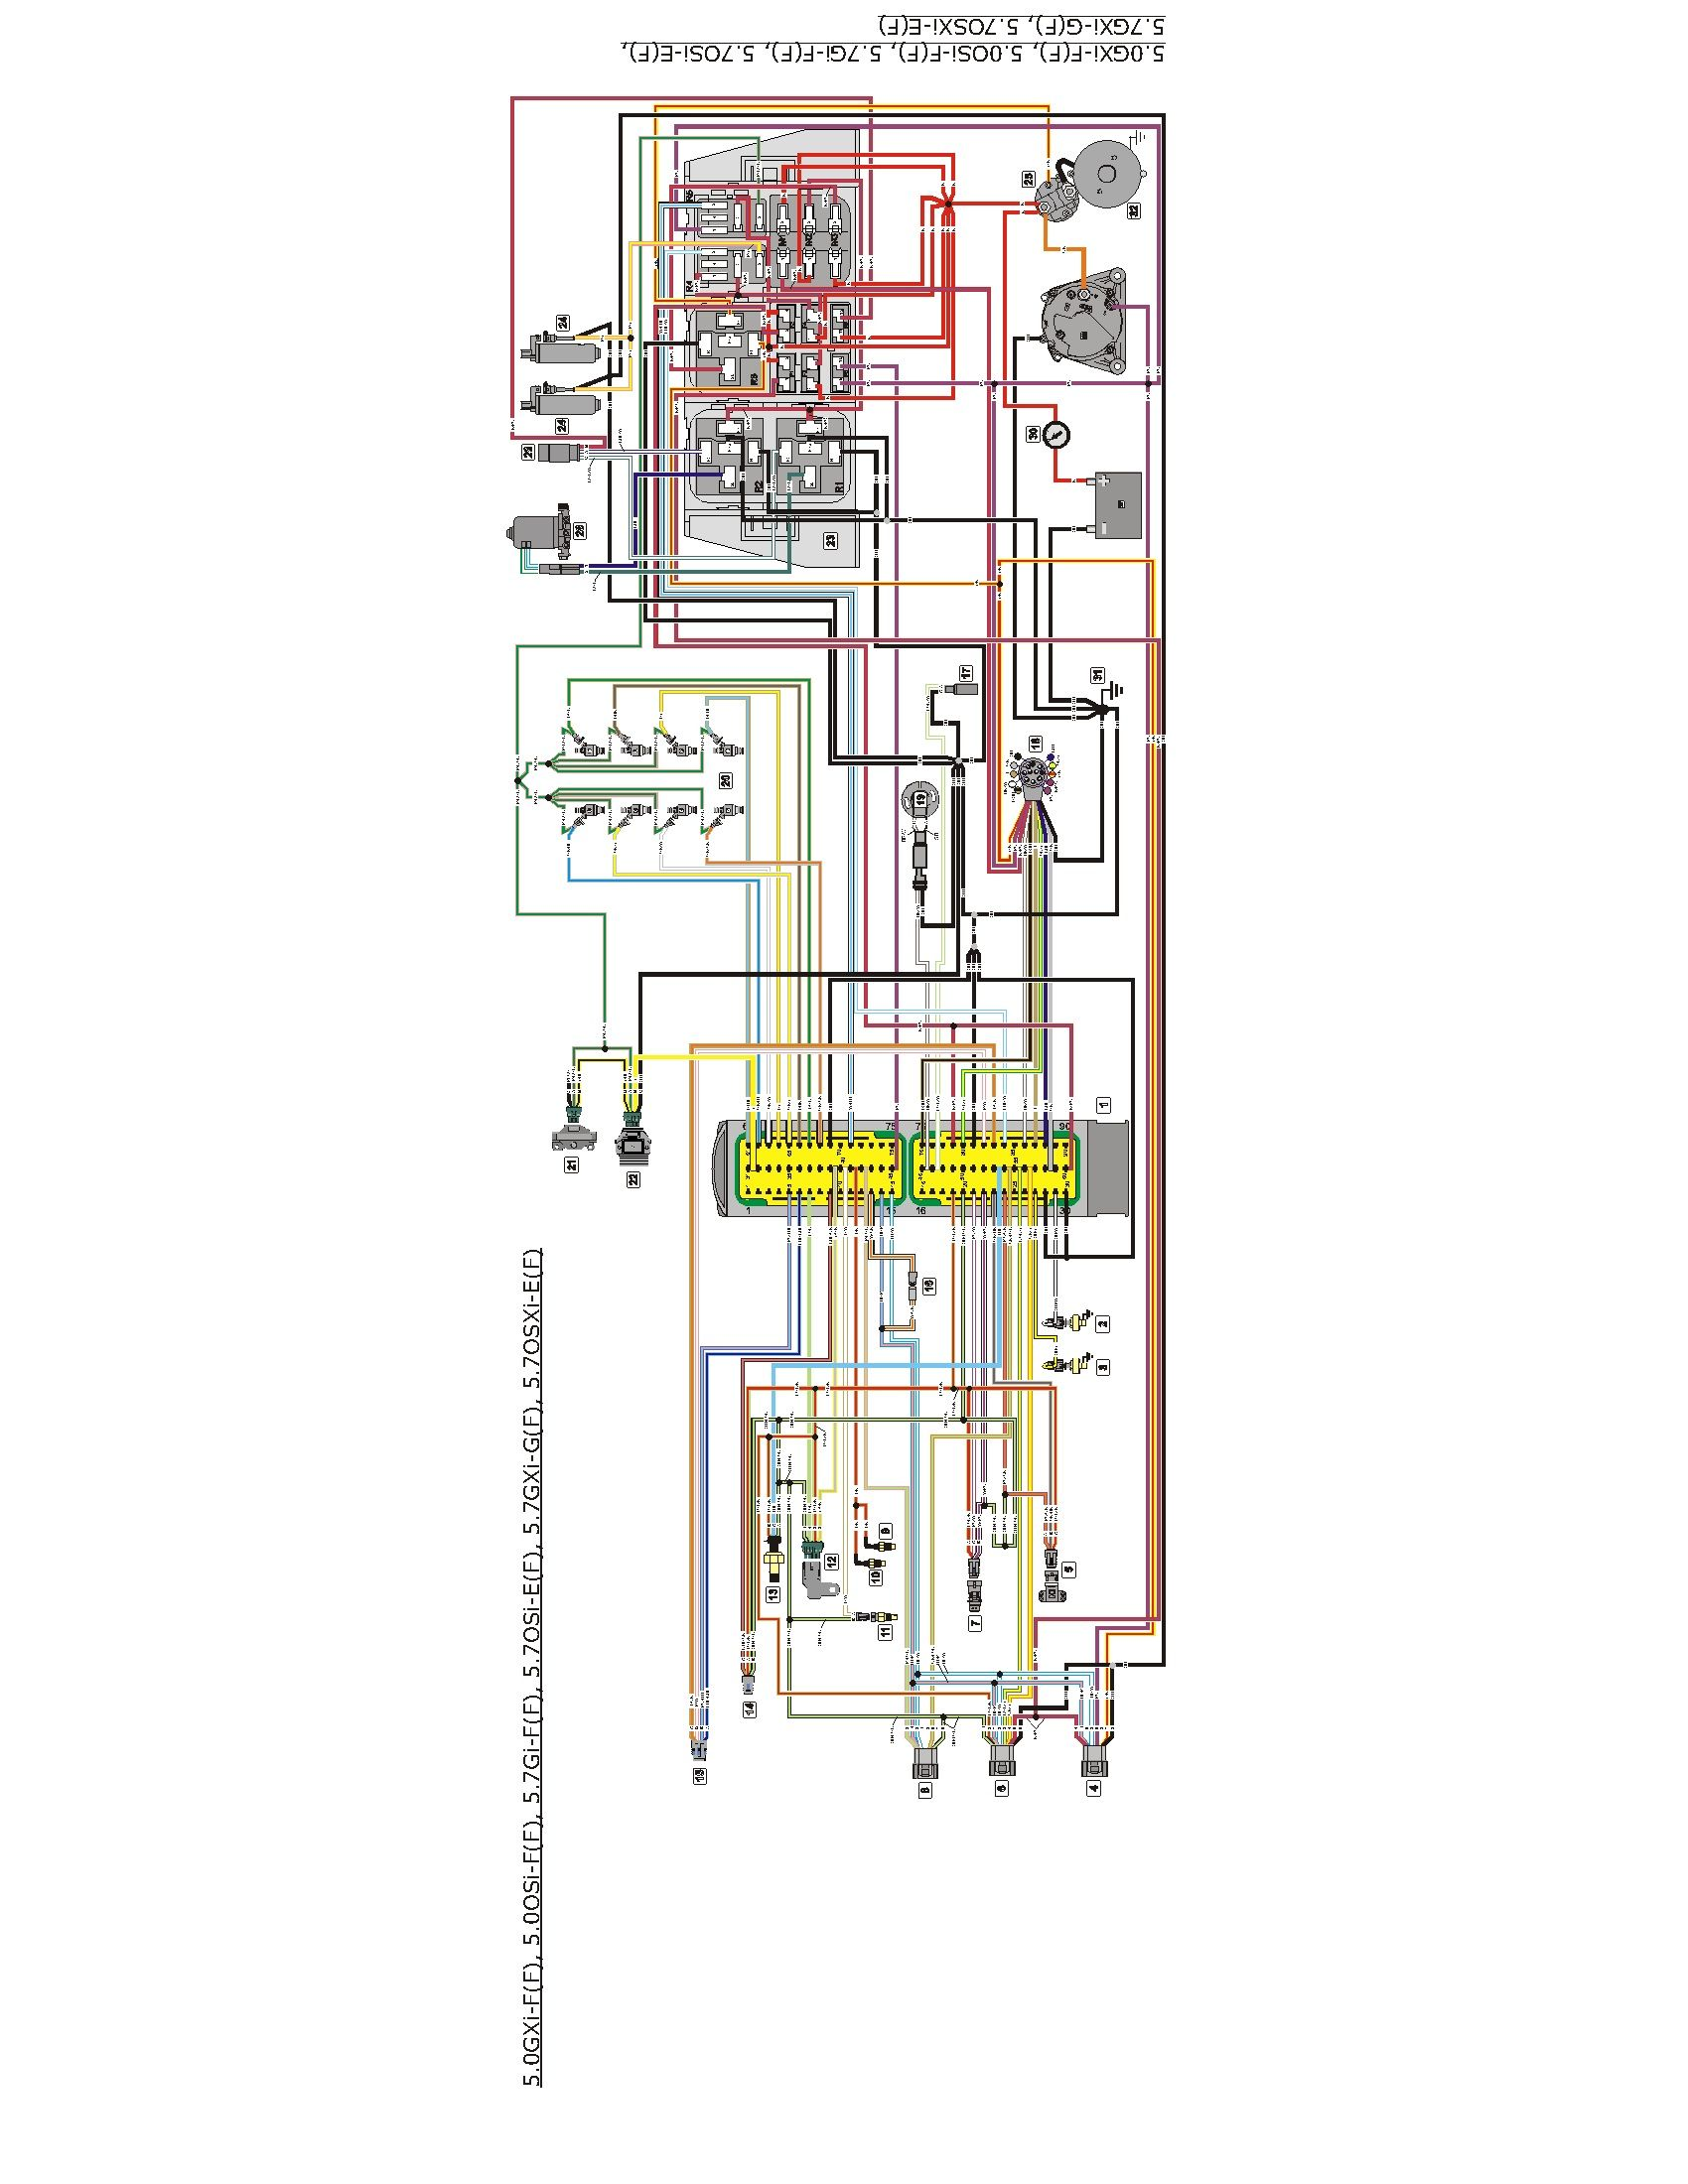 Volvo Penta 5.7 Engine Wiring Diagram | Boat | Pinterest | Volvo and ...